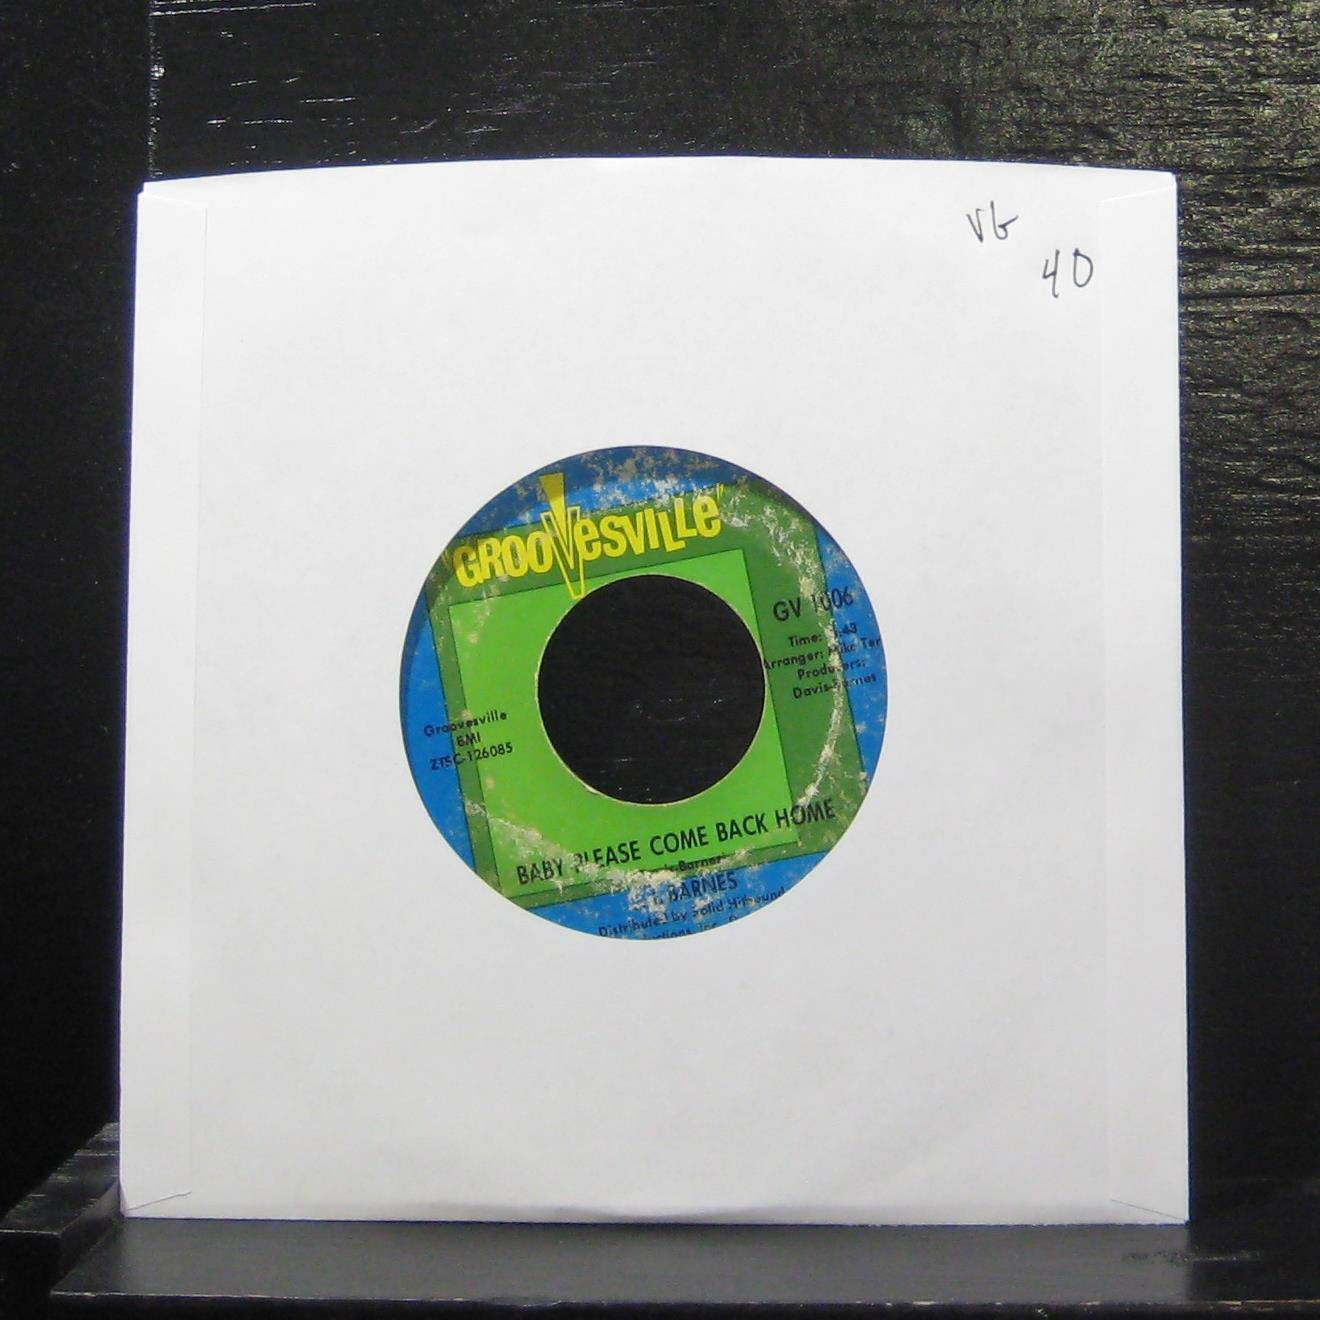 J. J. Barnes - Baby Please Come Back Home / Chains Of Love - 7